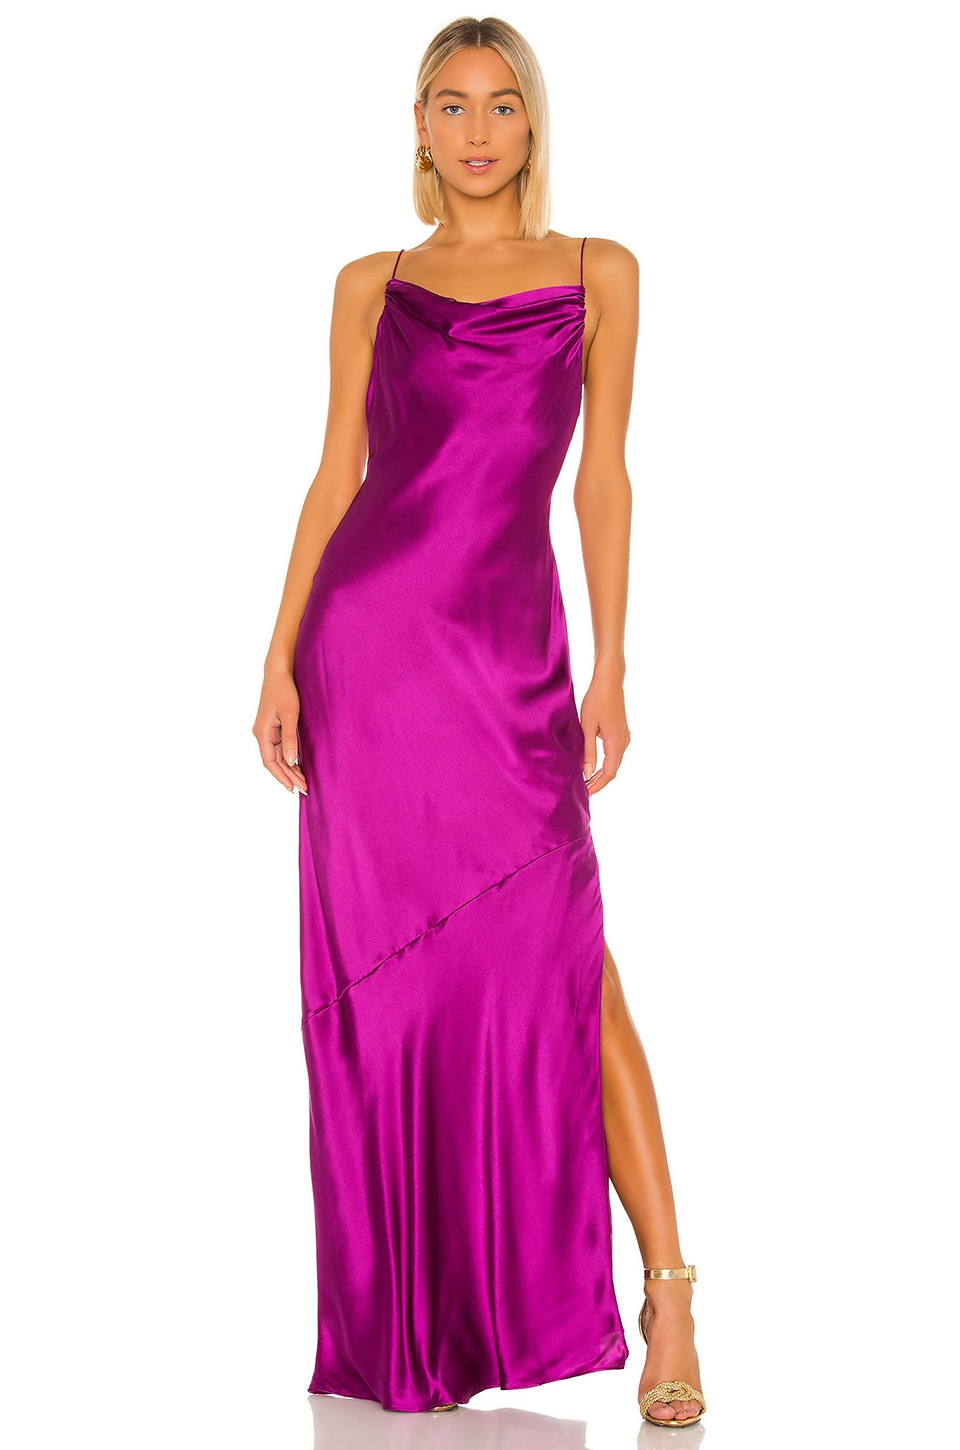 CAMI NYC The Carla Gown in Dragonfruit